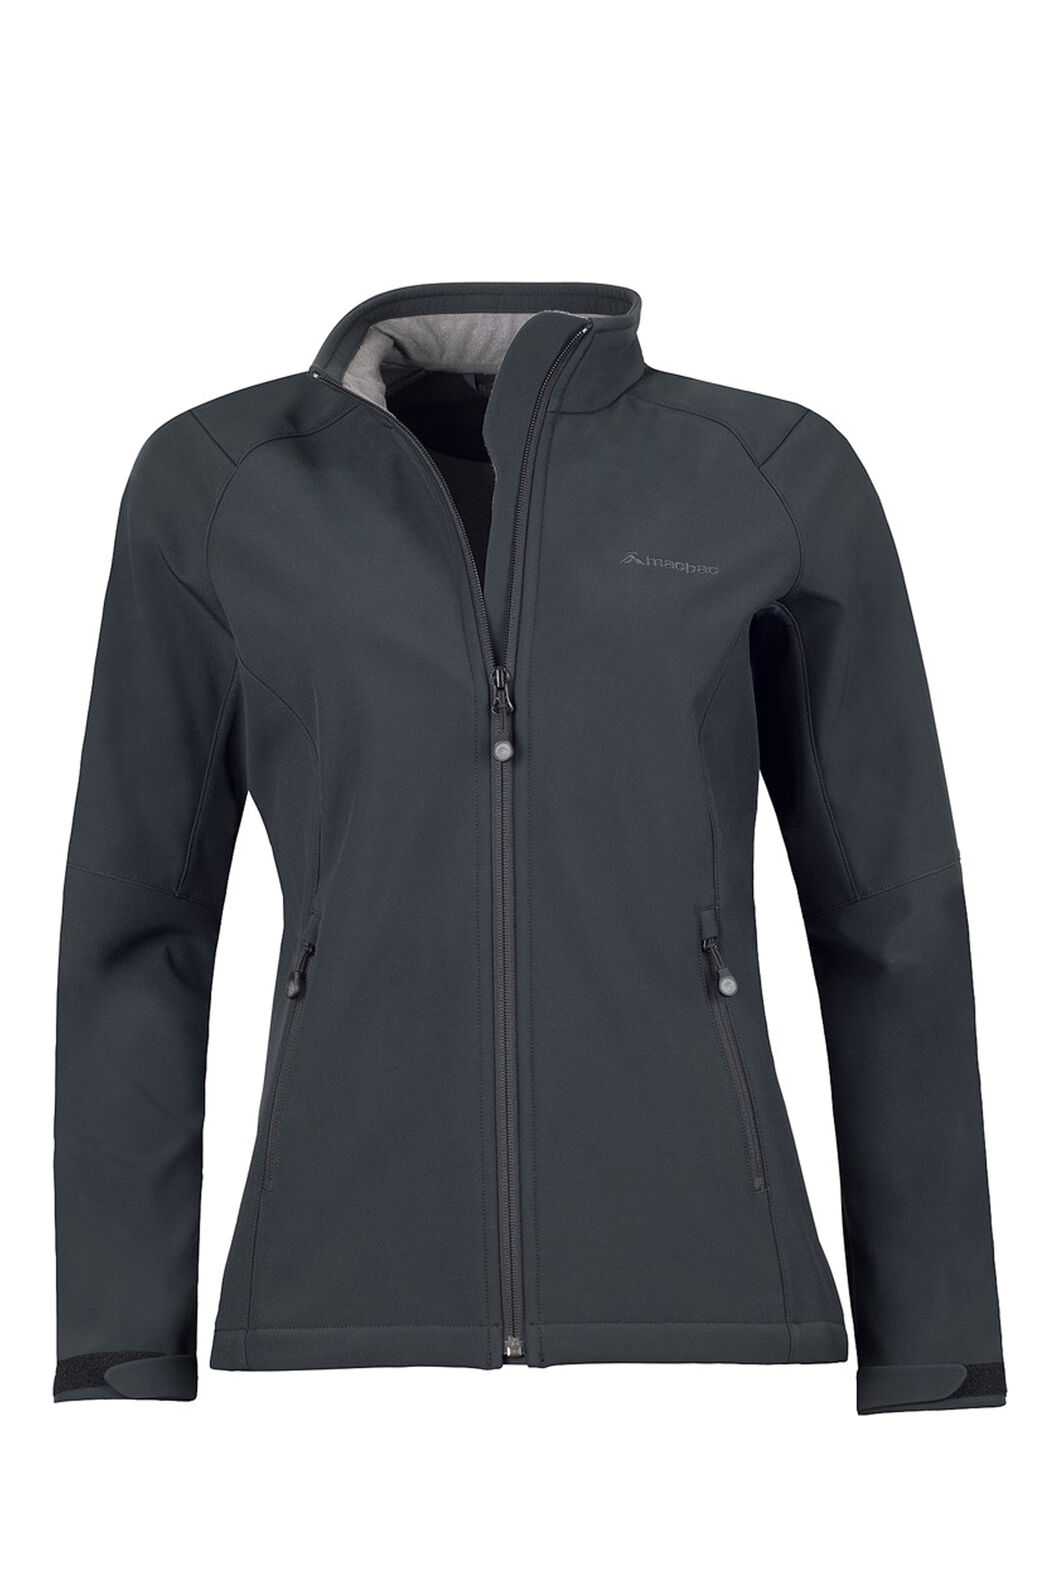 Macpac Sabre Softshell Jacket — Women's, Black, hi-res